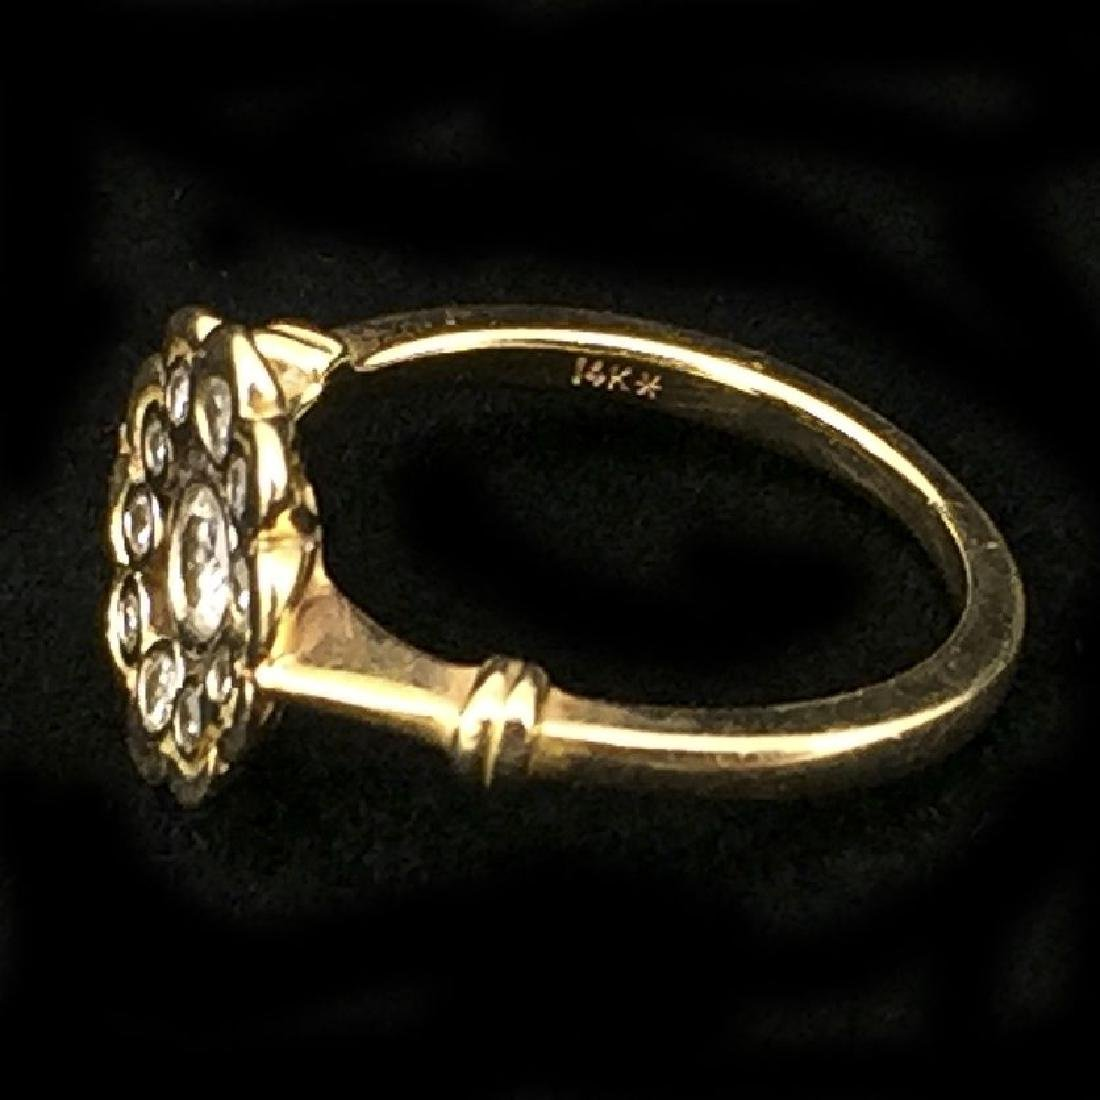 14K Gold Ring With 11 Diamonds - 3